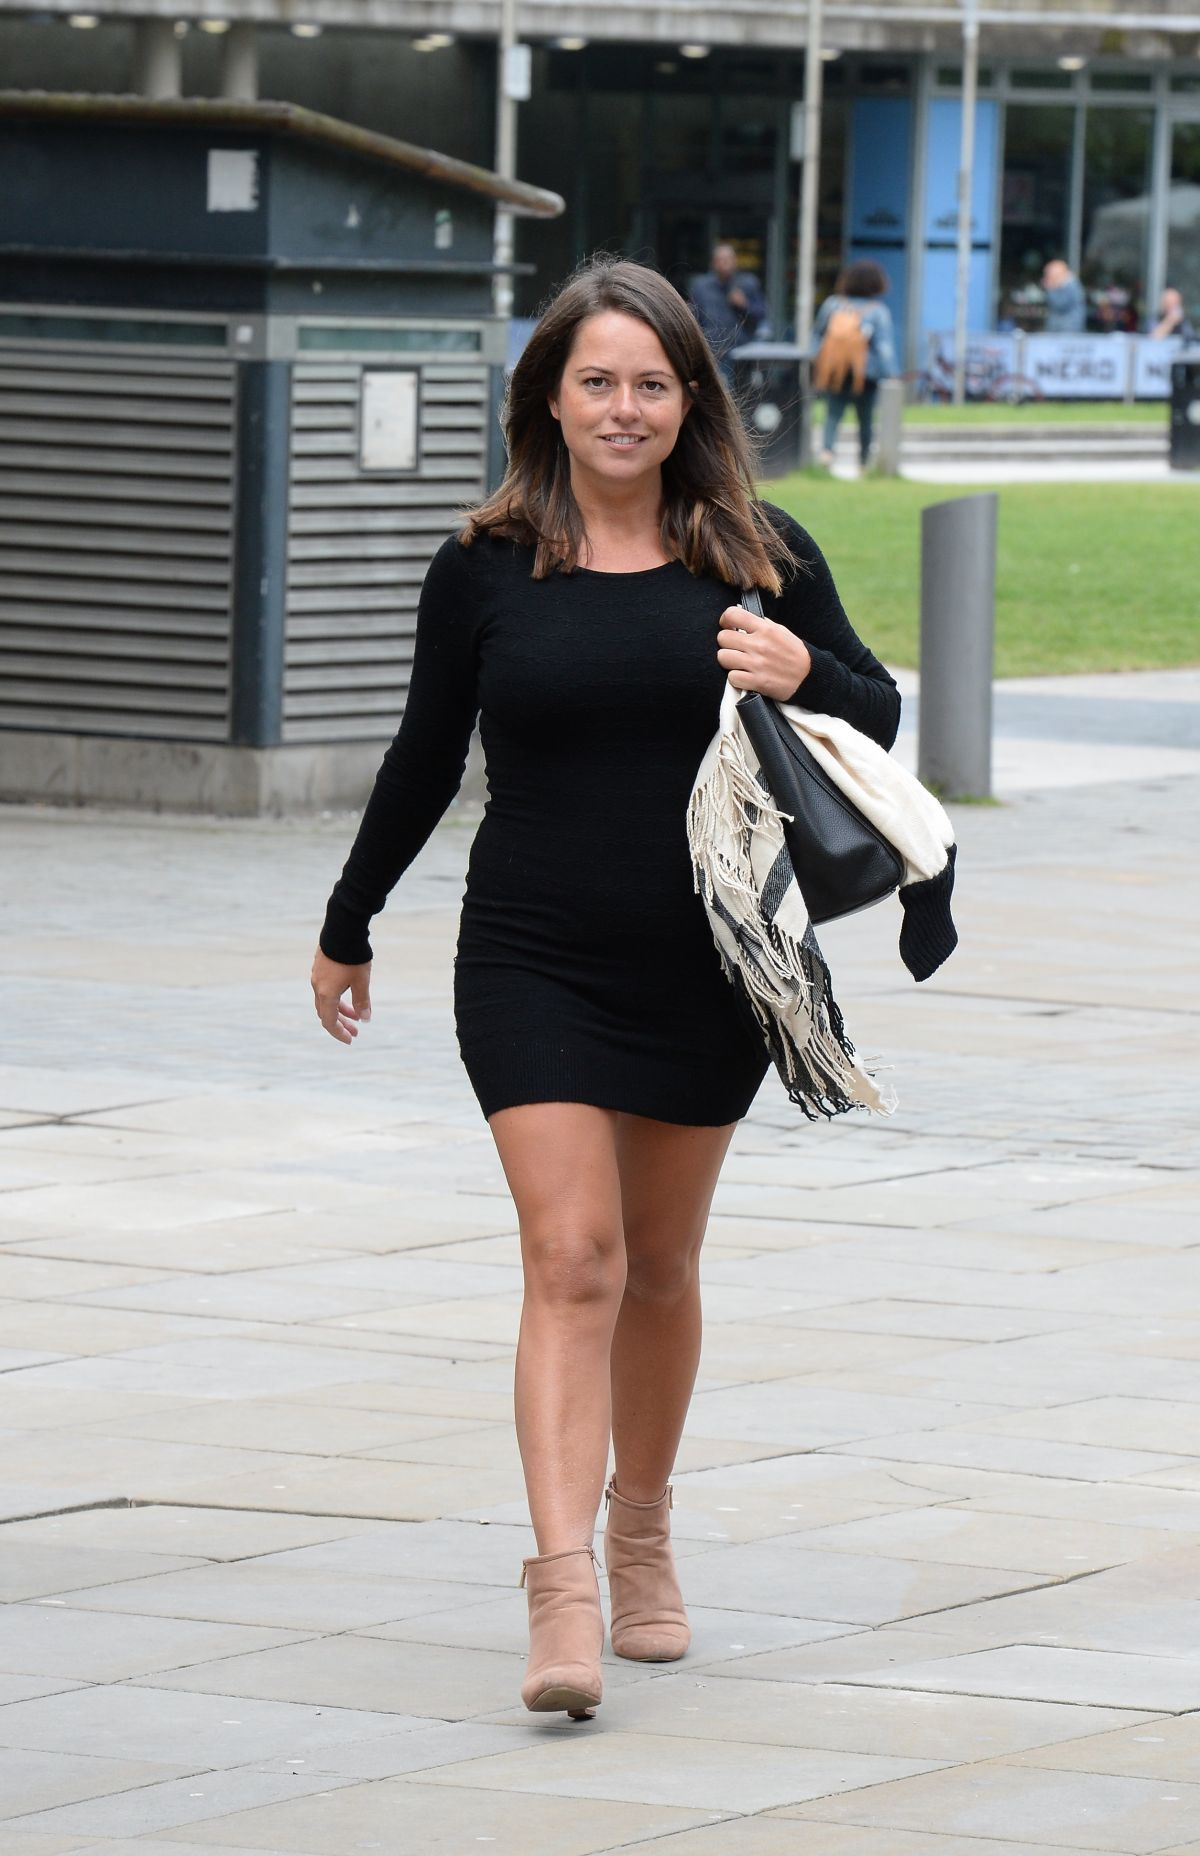 Leaked Karen Danczuk nudes (27 photo), Pussy, Leaked, Boobs, underwear 2015